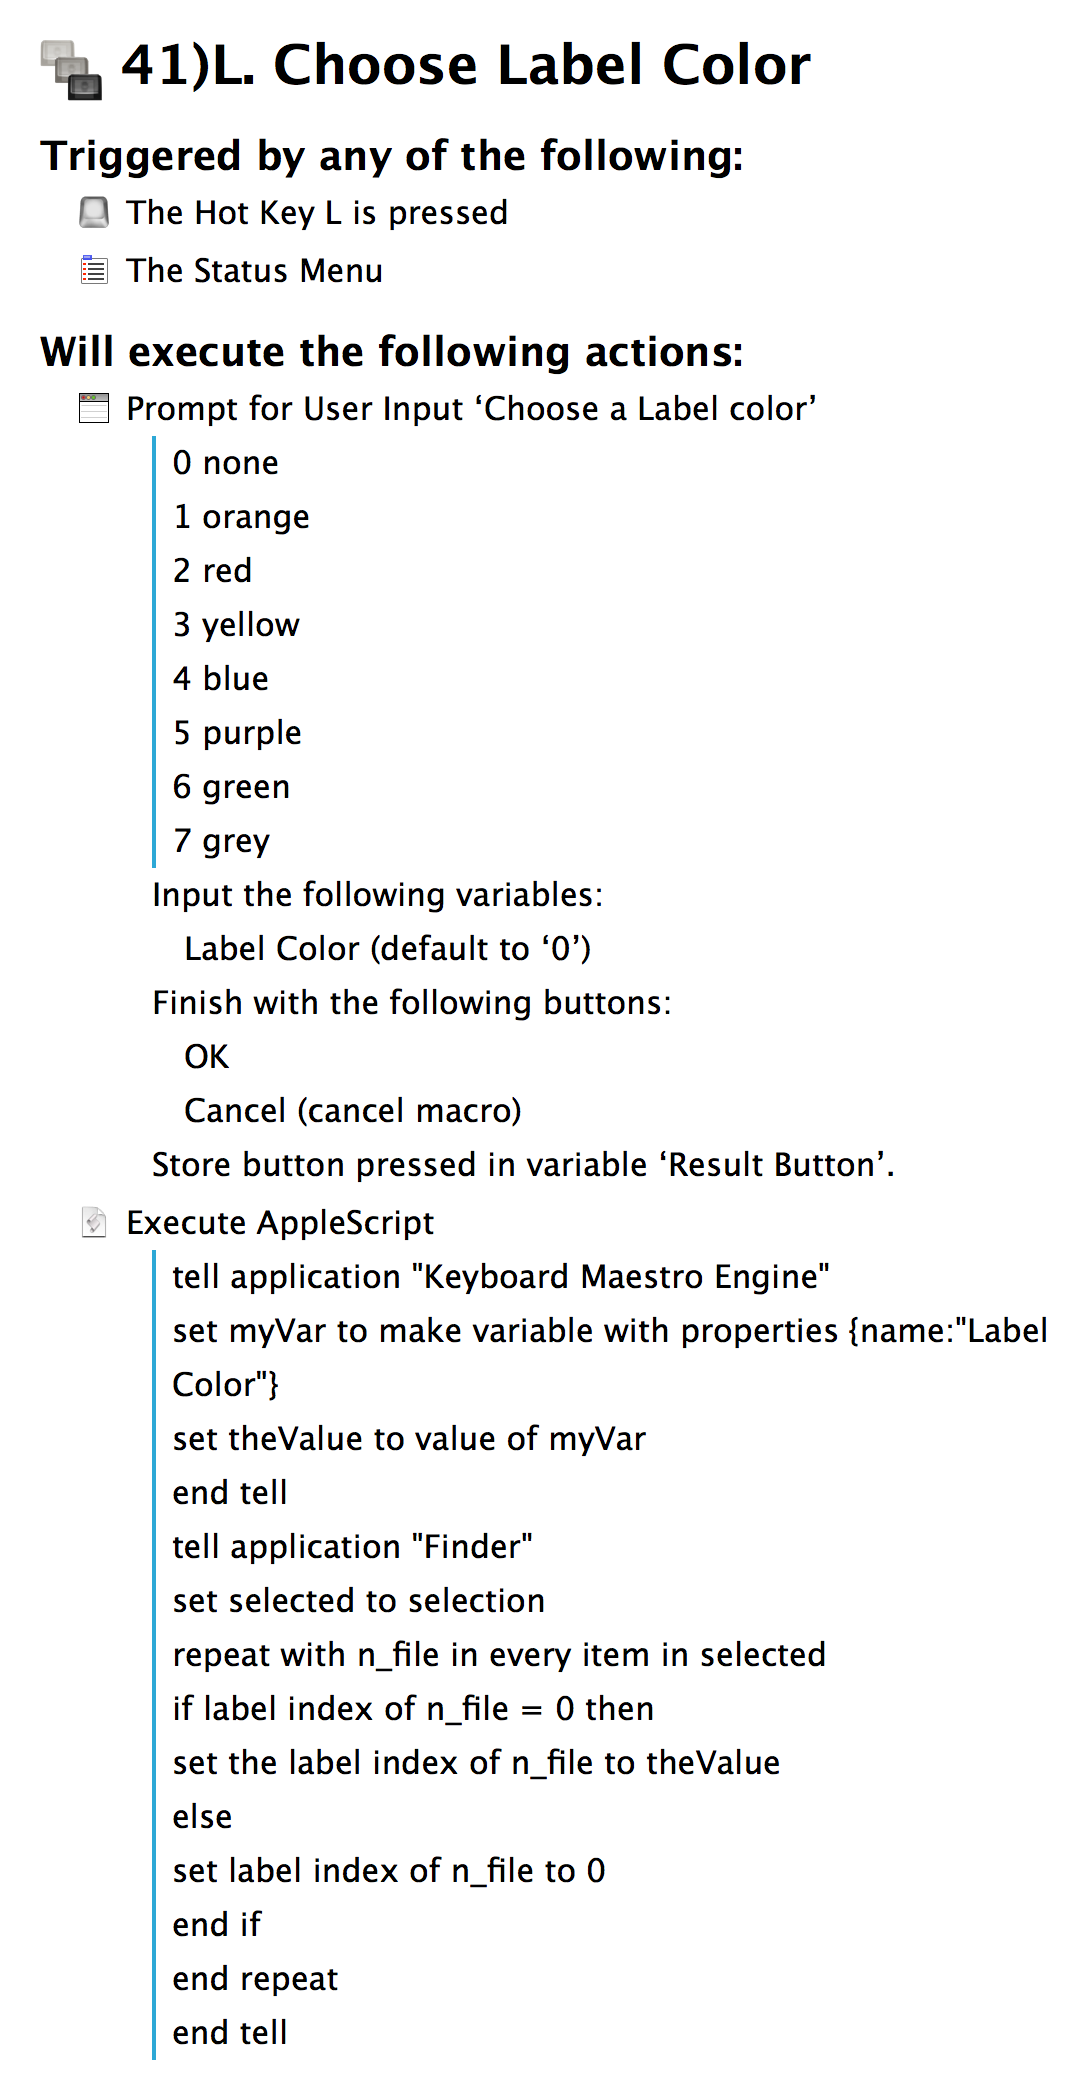 Keyboard Maestro macro for choosing label color in Finder